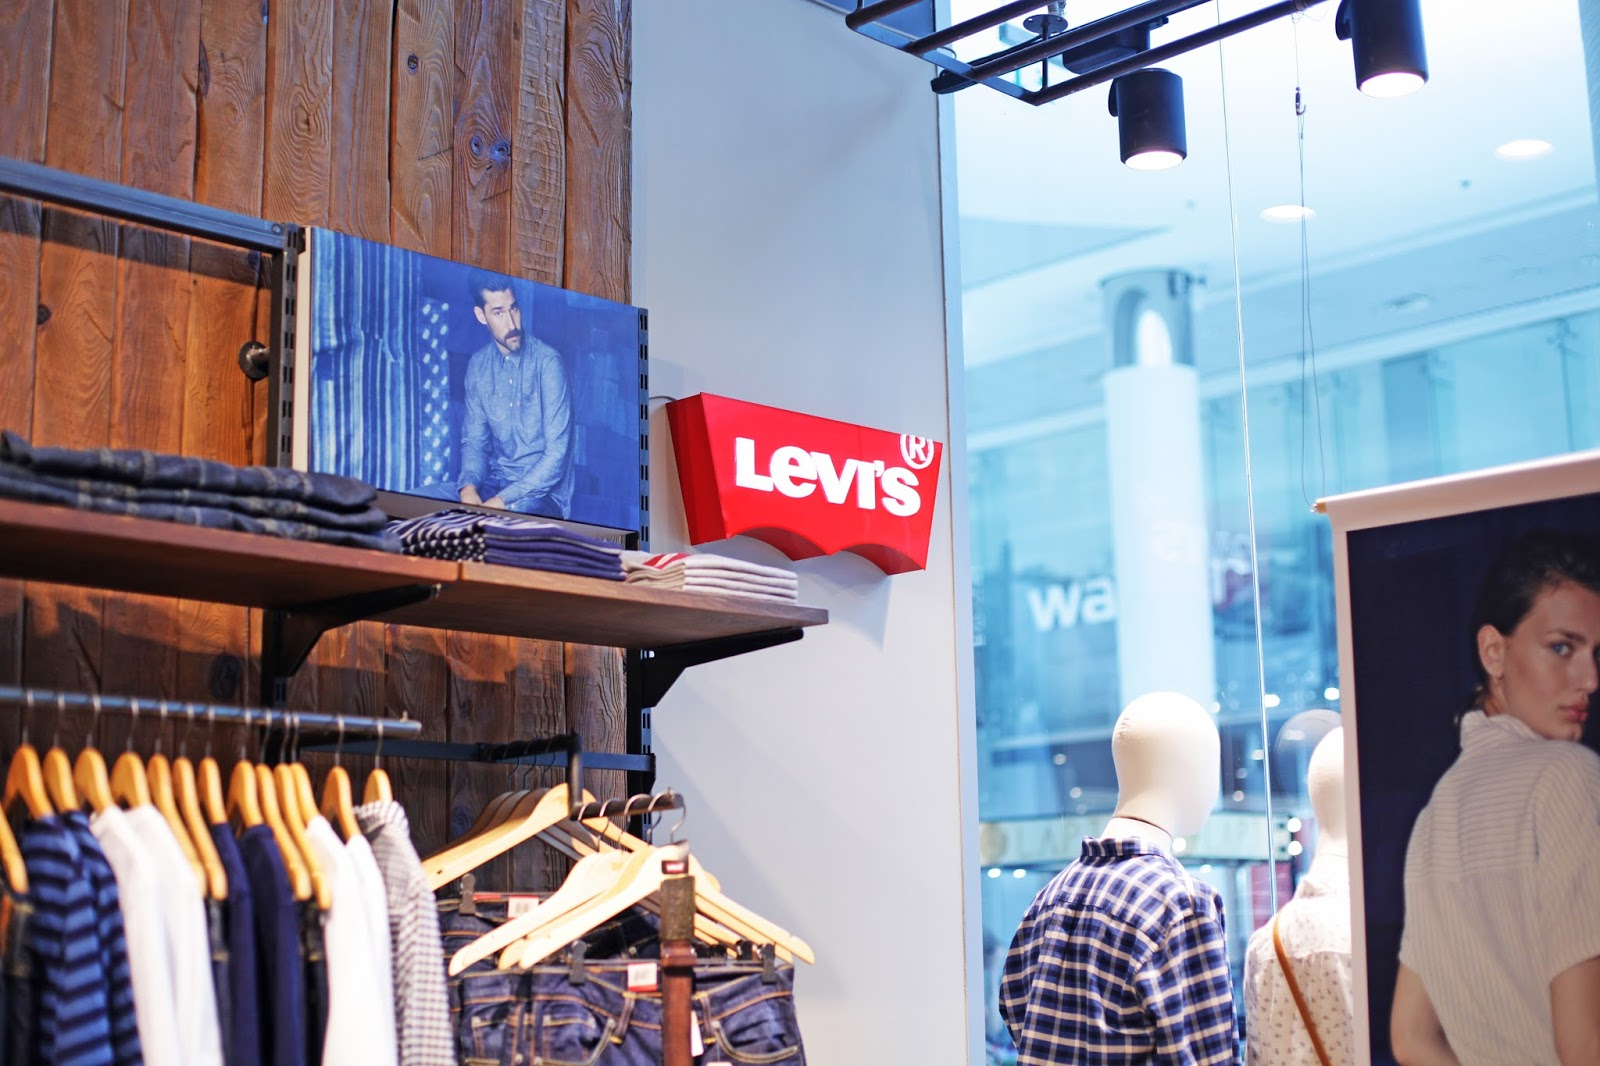 Ocean Plaza, sale, shopping, тренды лета 2016, Levi's